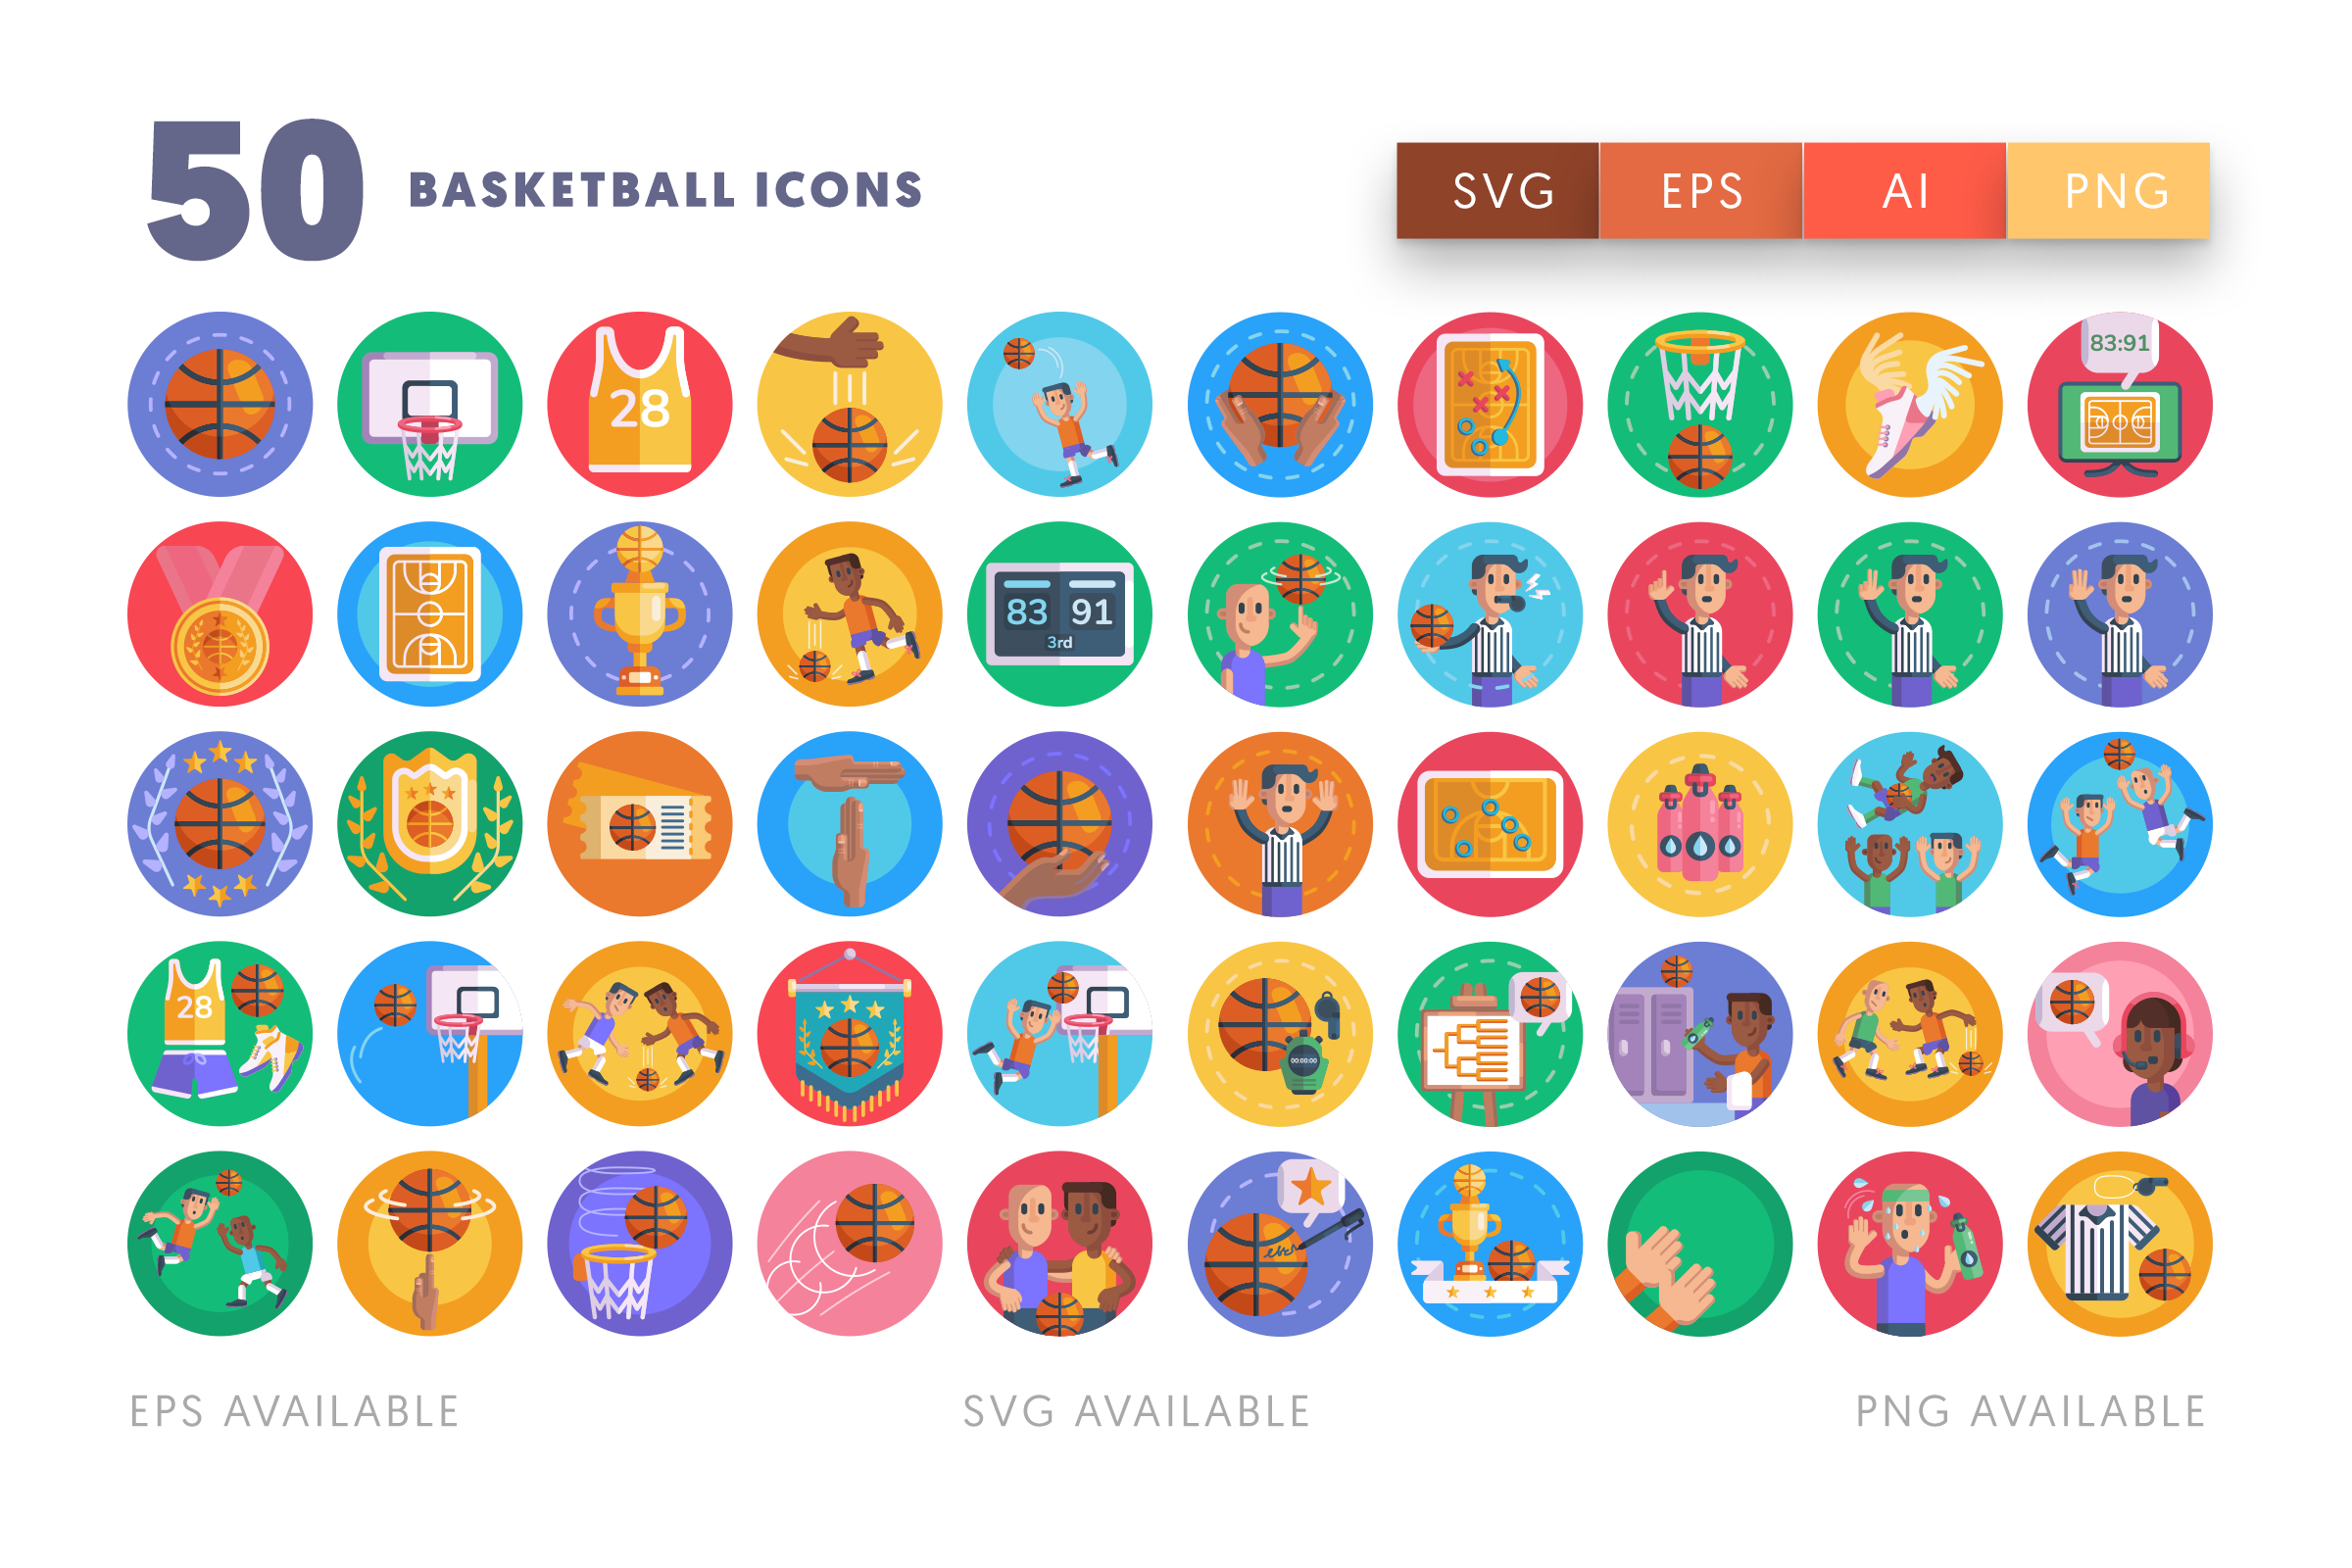 Basketball icons png/svg/eps